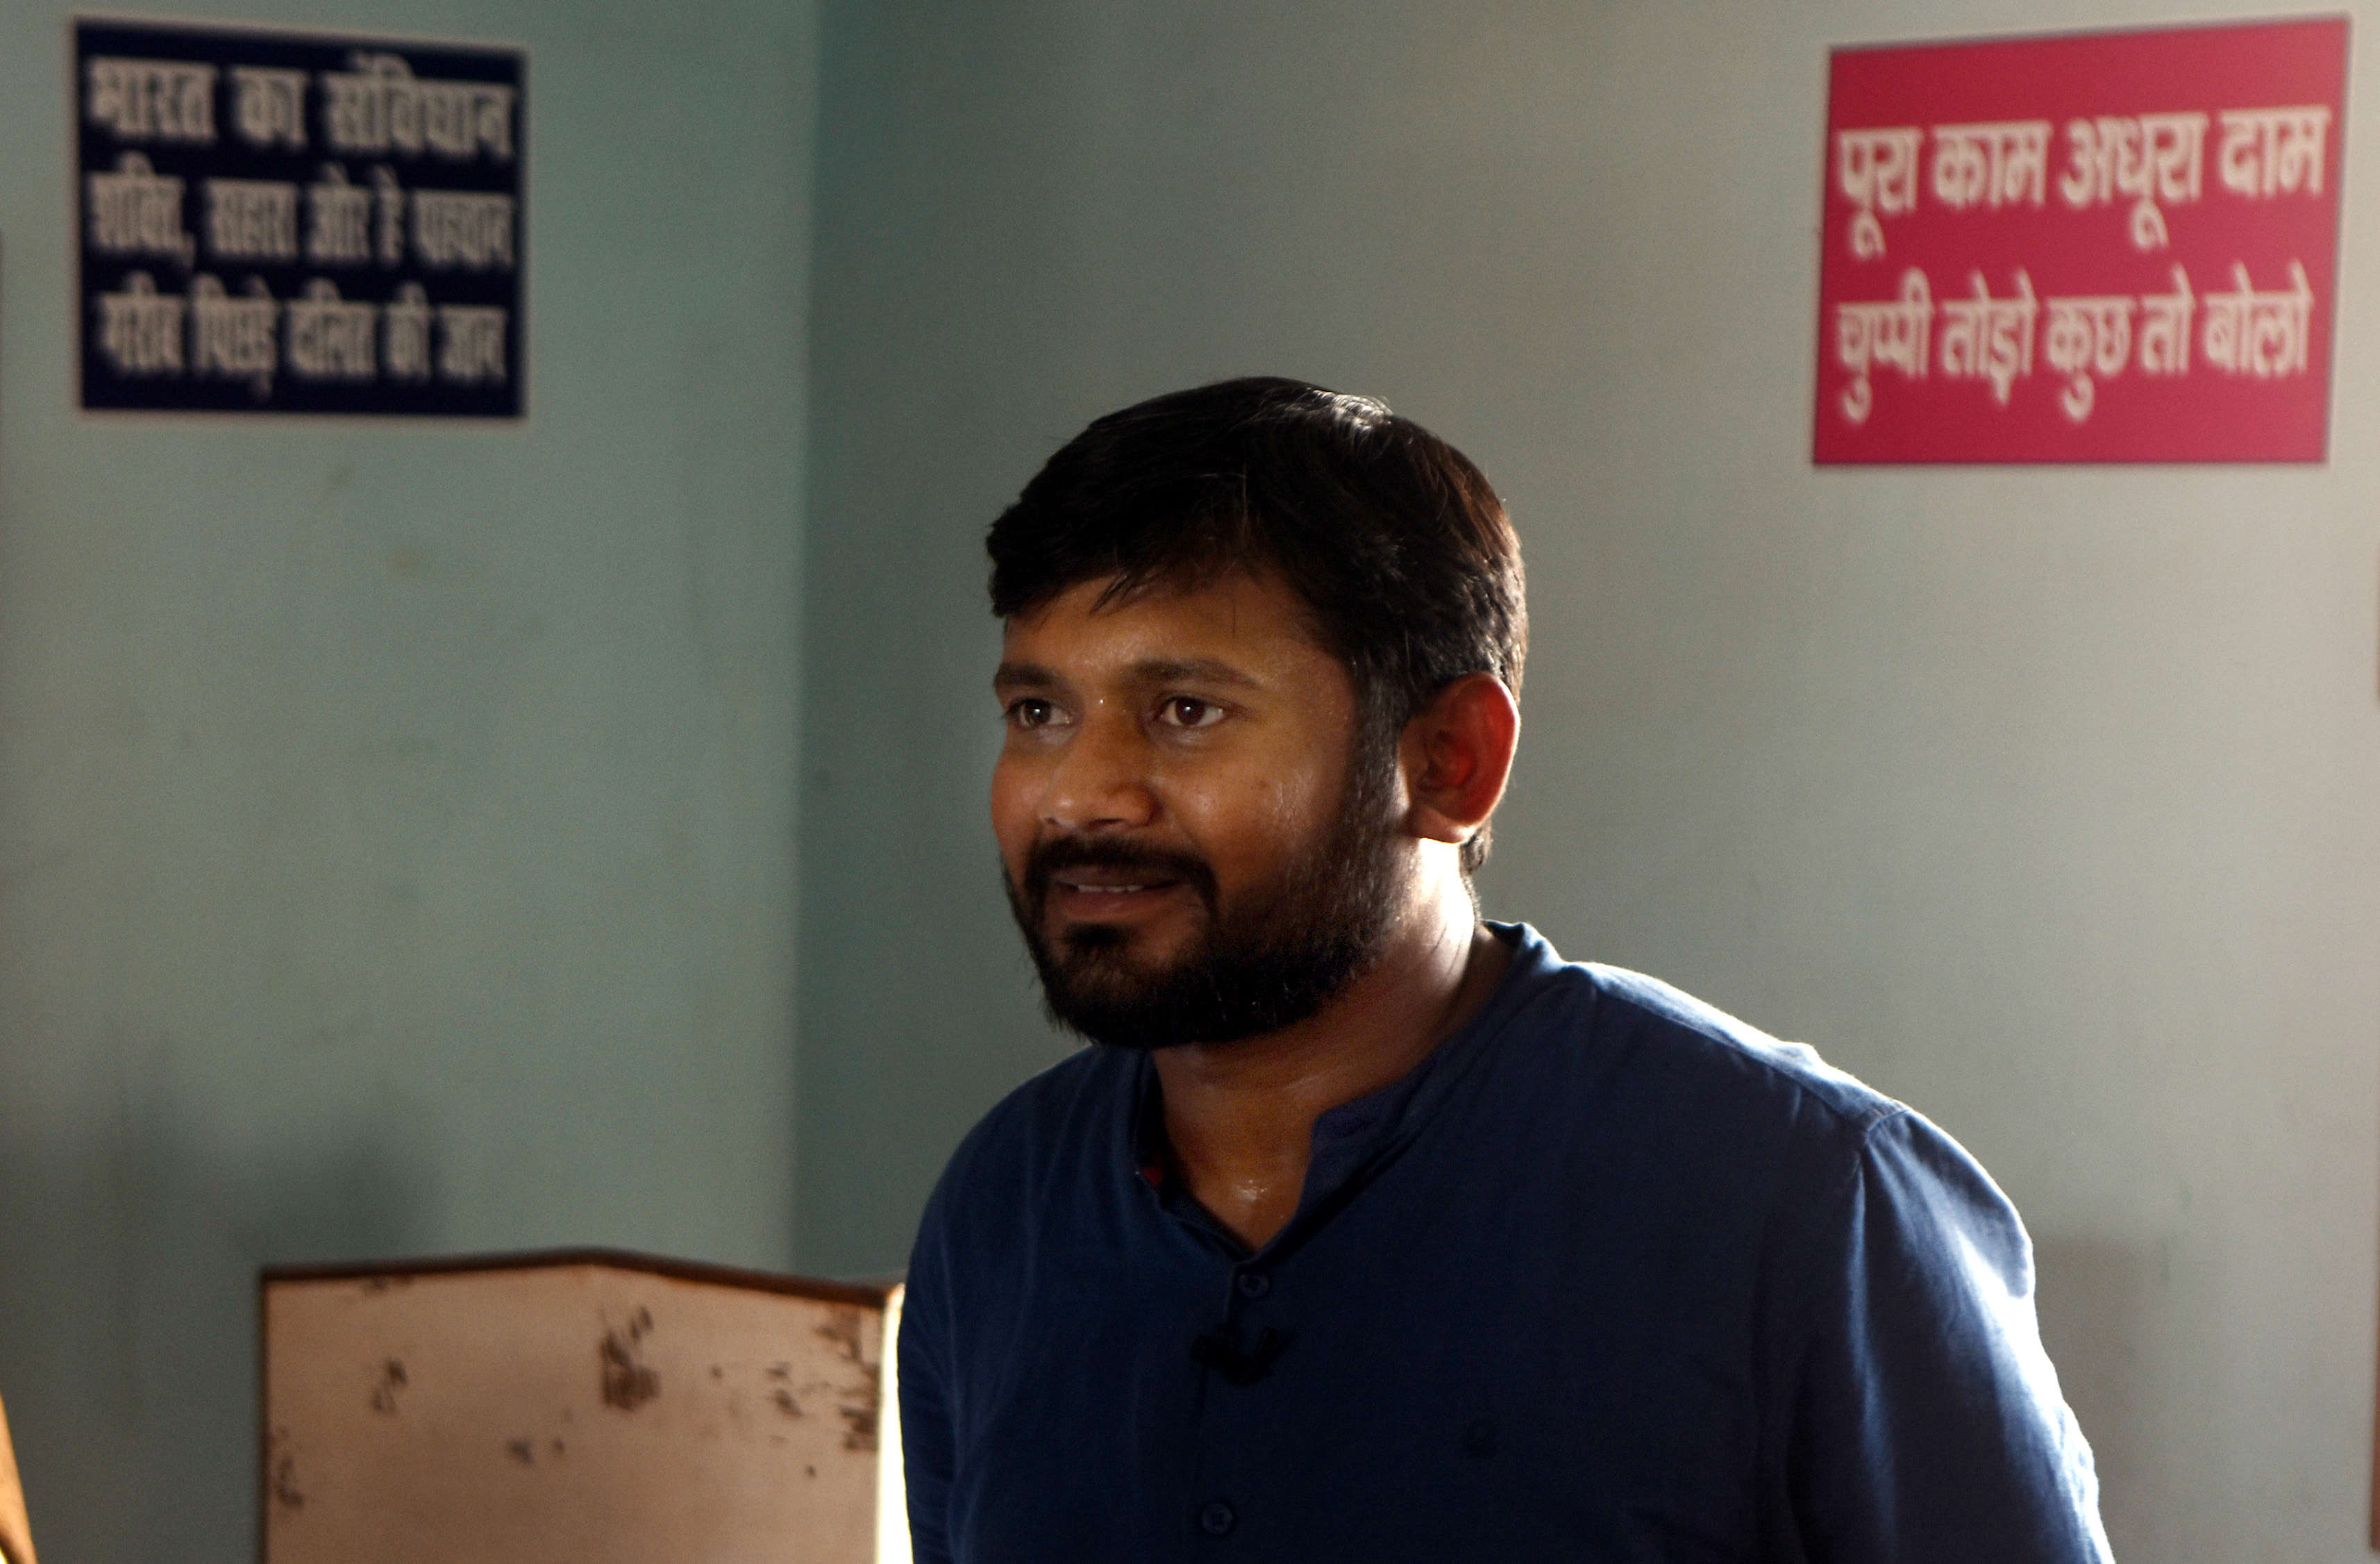 Slide 29 of 31: BEGUSARAI, INDIA - MARCH 31: Former president of the Jawaharlal Nehru University Students Union (JNUSU) and CPI candidate from Begusarai Kanhaiya Kumar seen at his party office on March 31, 2019 in Begusarai, India. (Photo by Parwaz Khan/Hindustan Times via Getty Images)